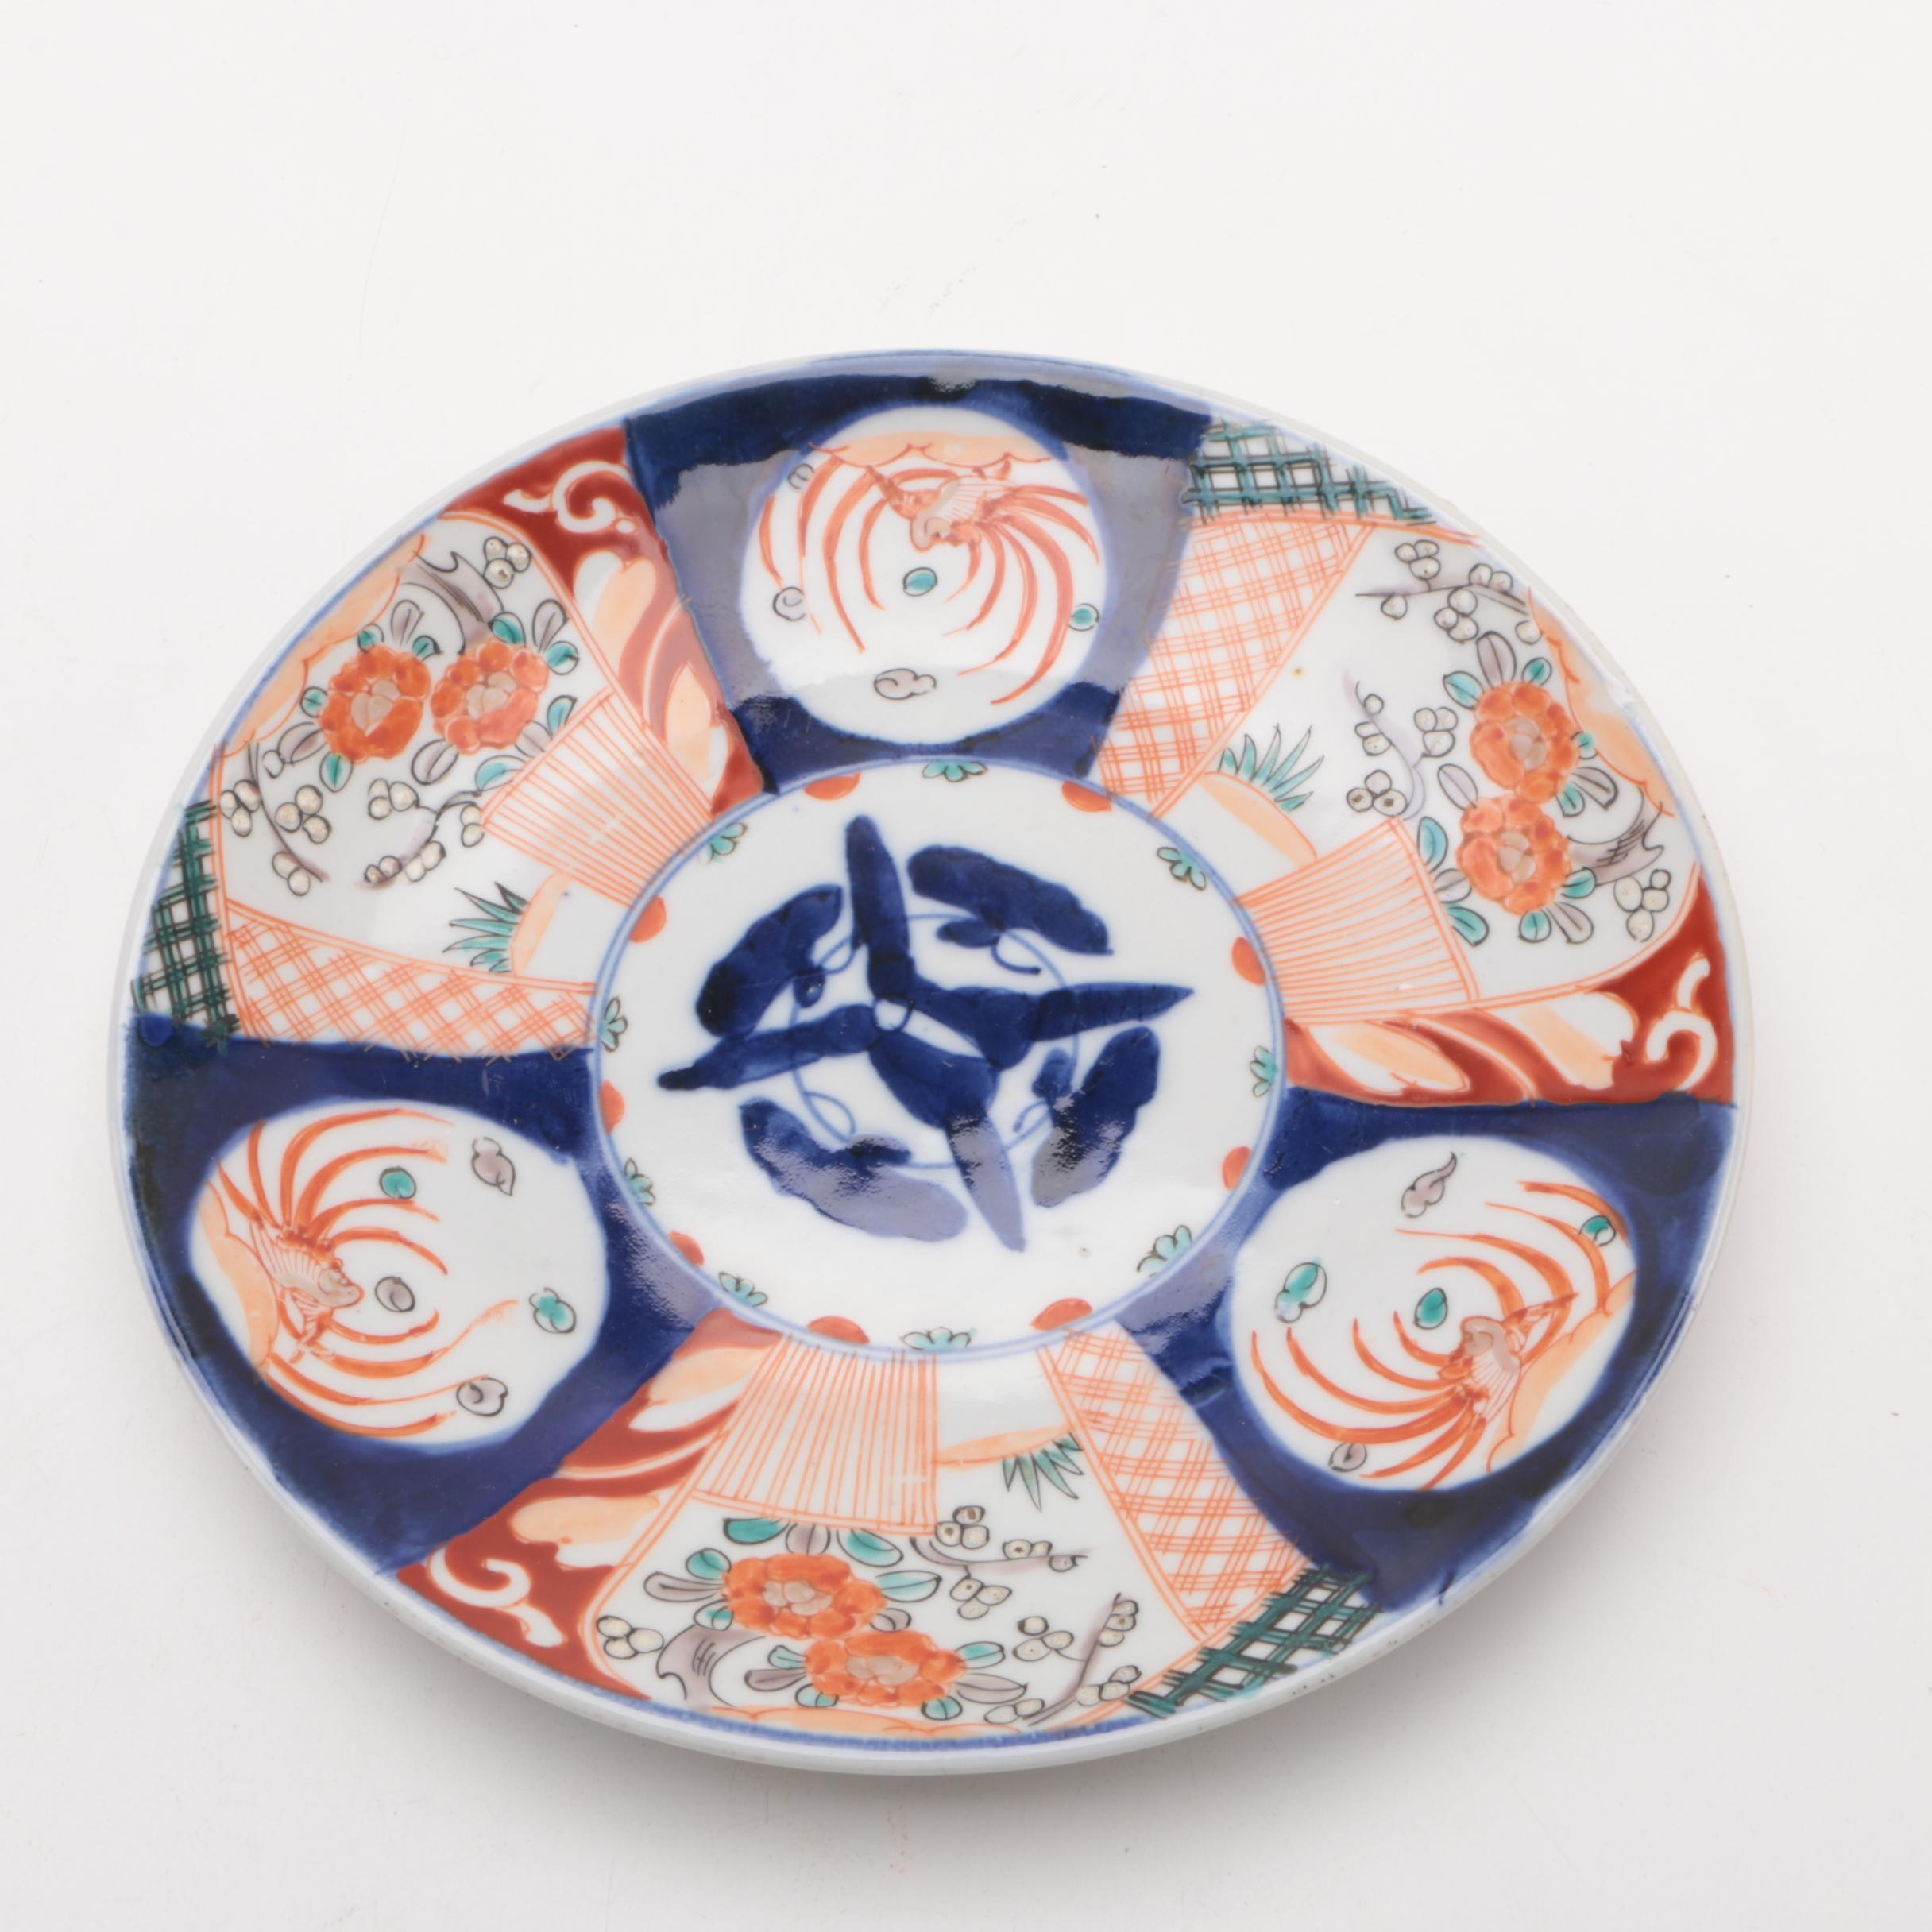 Hand Painted Imari Style Porcelain Plate